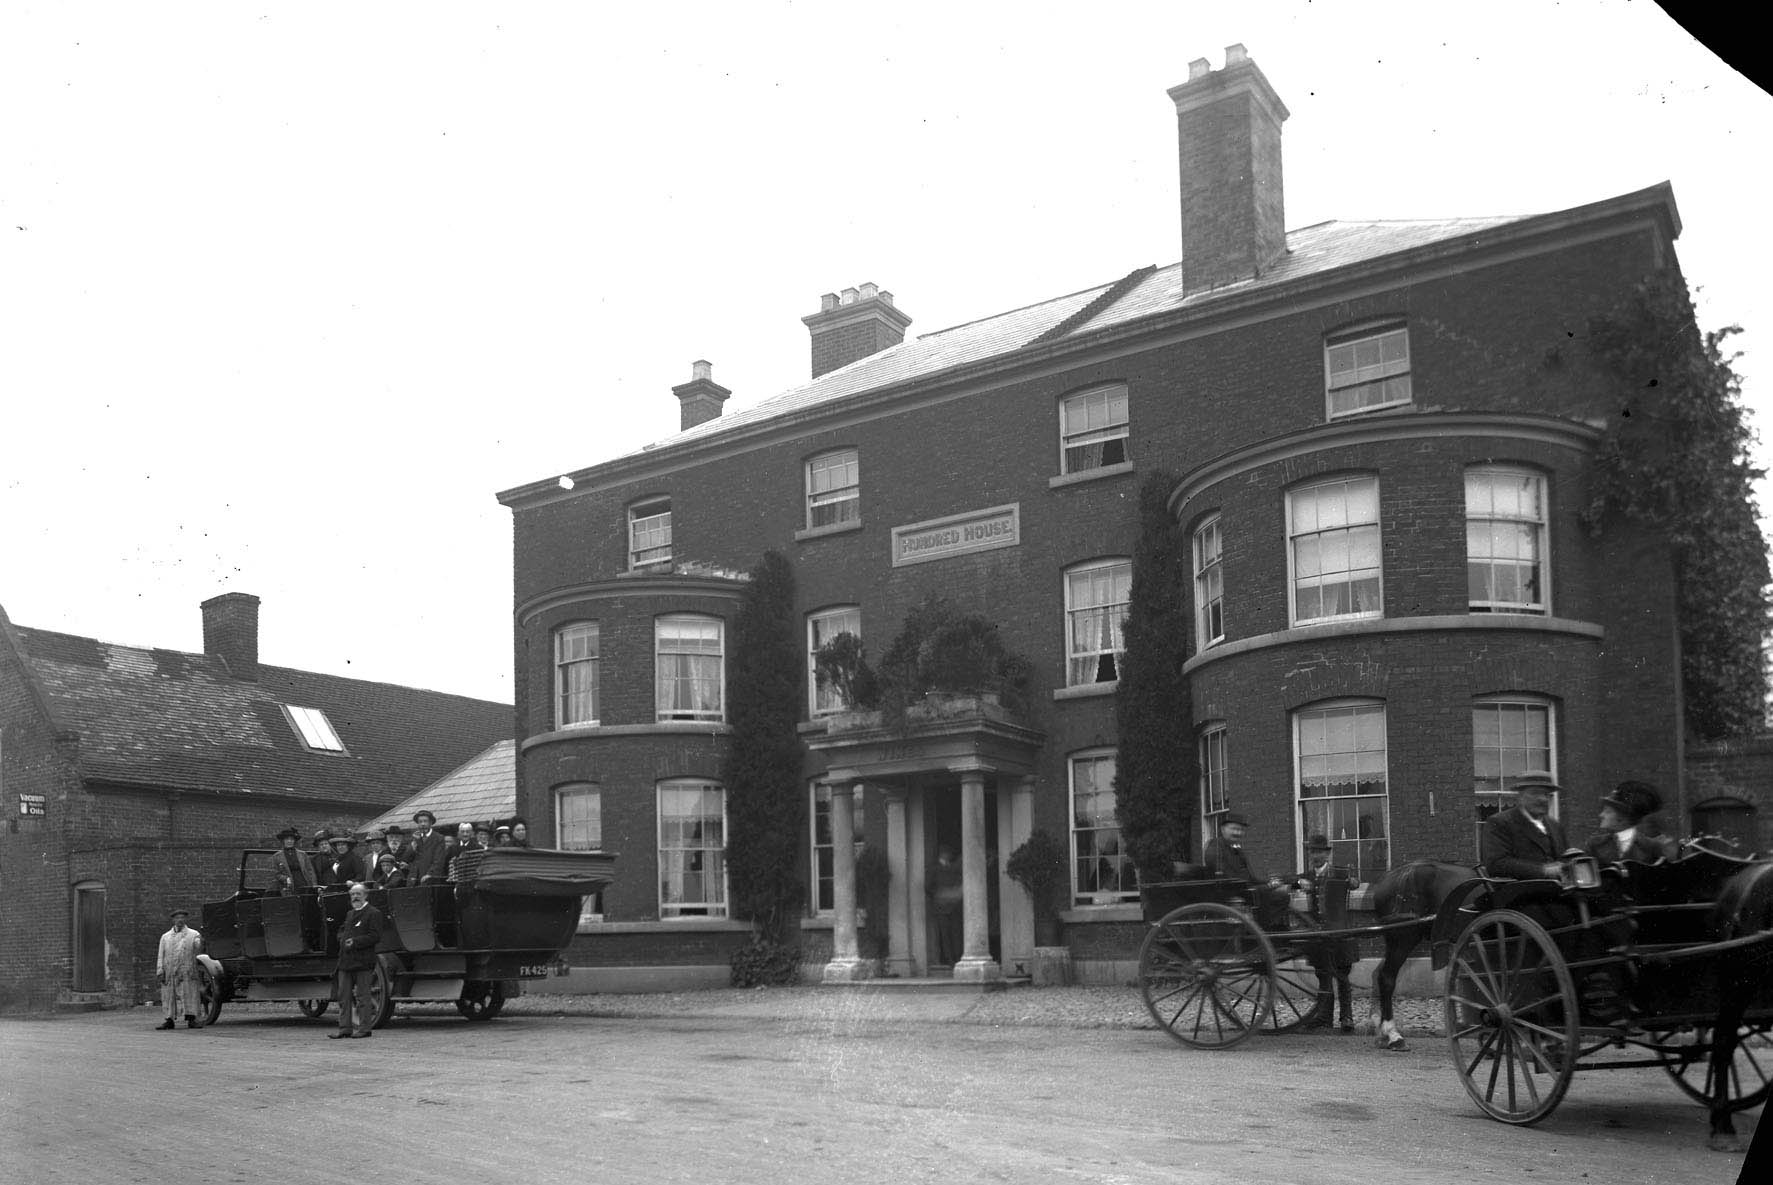 An example of a photo from the archives, The Hundred House in Great Witley